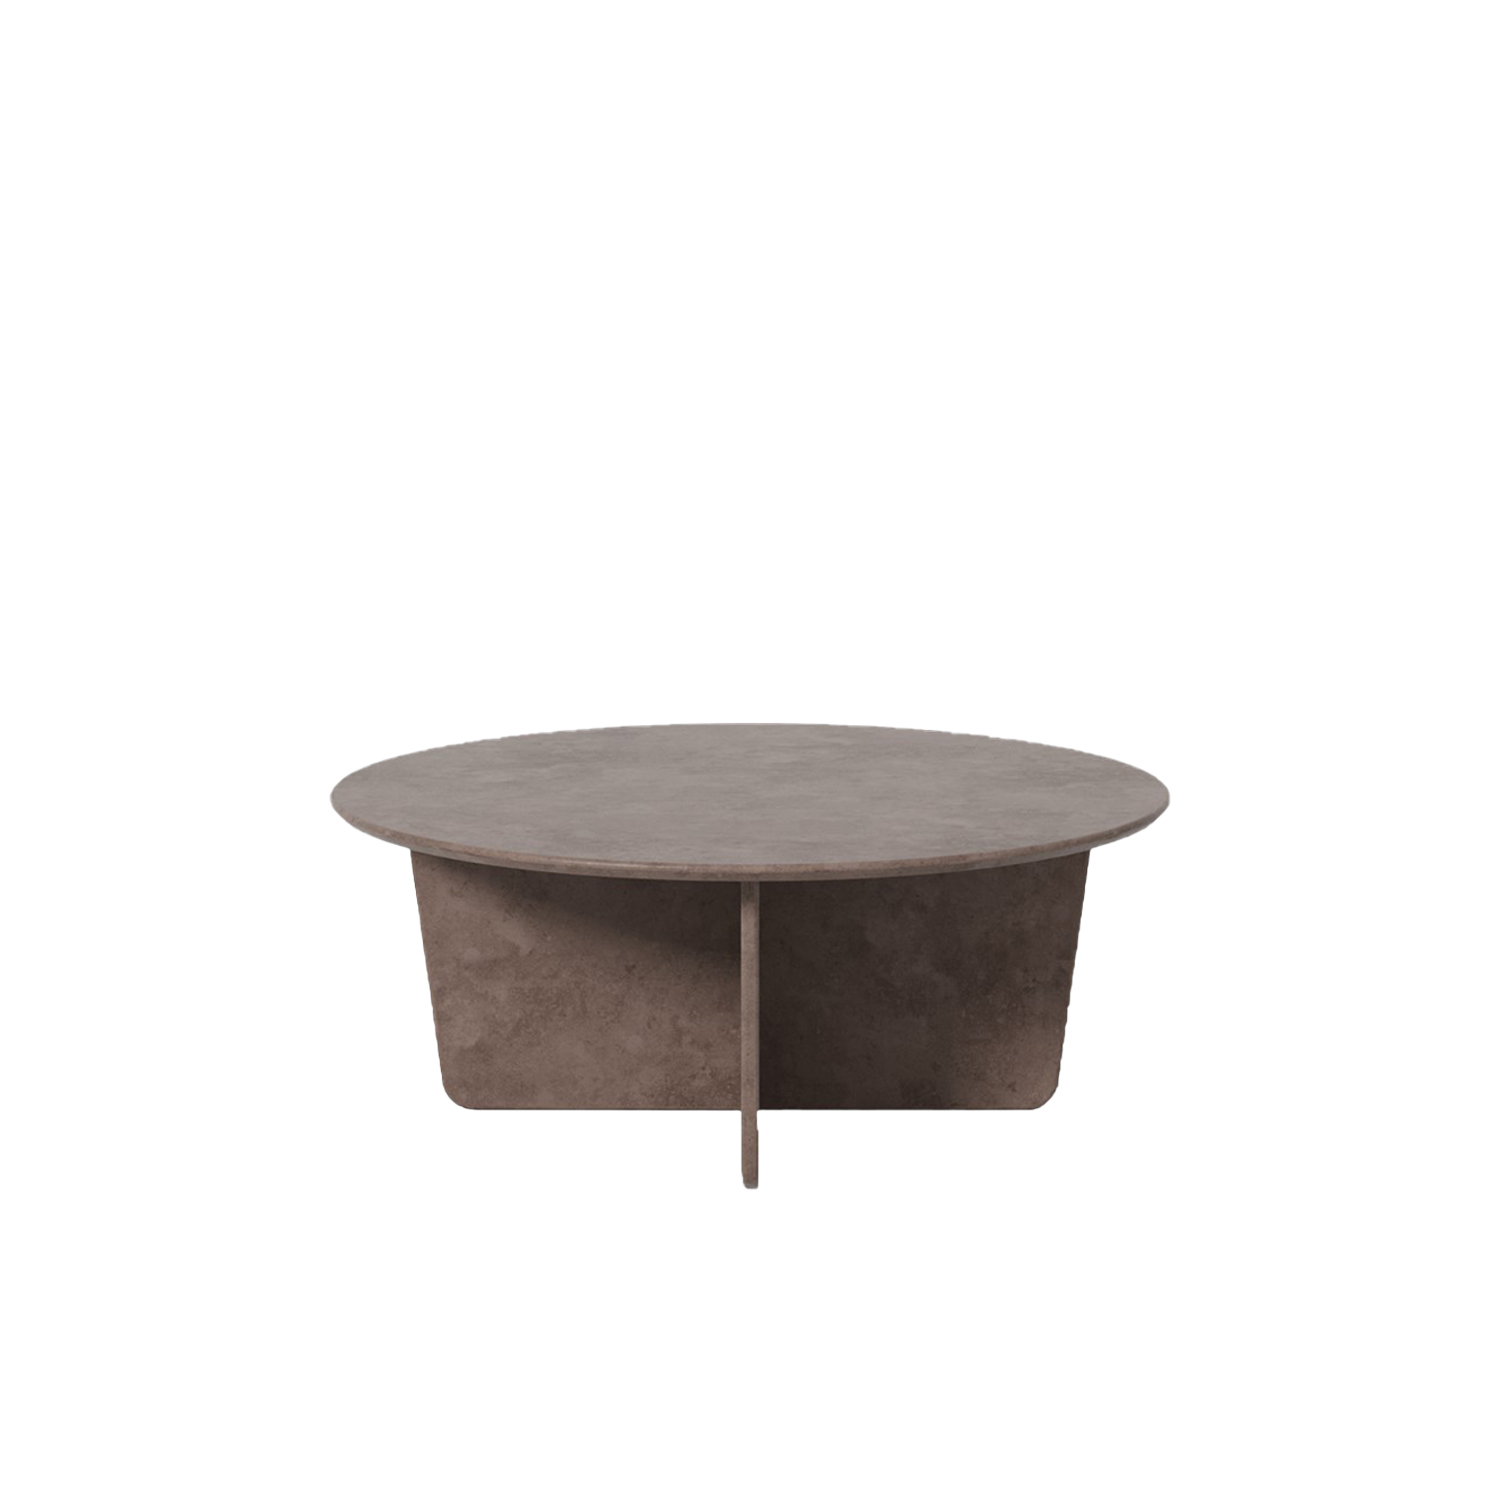 Tableau 1960 Coffee Table - The Tableau series in stone reflects a passion for natural materials that runs deep in our DNA, involving expert craftmanship that lies at the core of our company. With its graceful geometric contours and x-shaped base, Tableau creates a soft silhouette that exudes effortless elegance.  Stone is a new addition to select products in Fredericia's portfolio and Tableau is one of the first to be launched in stone.   It's quite an accomplishment to craft the table in stone, creating synergy with the soft-corned square top and the x-shaped base. Stone has a universal appeal as an exclusive material, with subtle differences in surface patterns unique to each stone.   Available in three versions, the Tableau series in stone makes for a subtle yet striking statement that's ideal in a variety of venues. Such as private homes, as well as luxurious hotels, upscale restaurants and exclusive lounges. Virtually any interior where you want to signal a look that's timeless and unquestionably elegant.   | Matter of Stuff